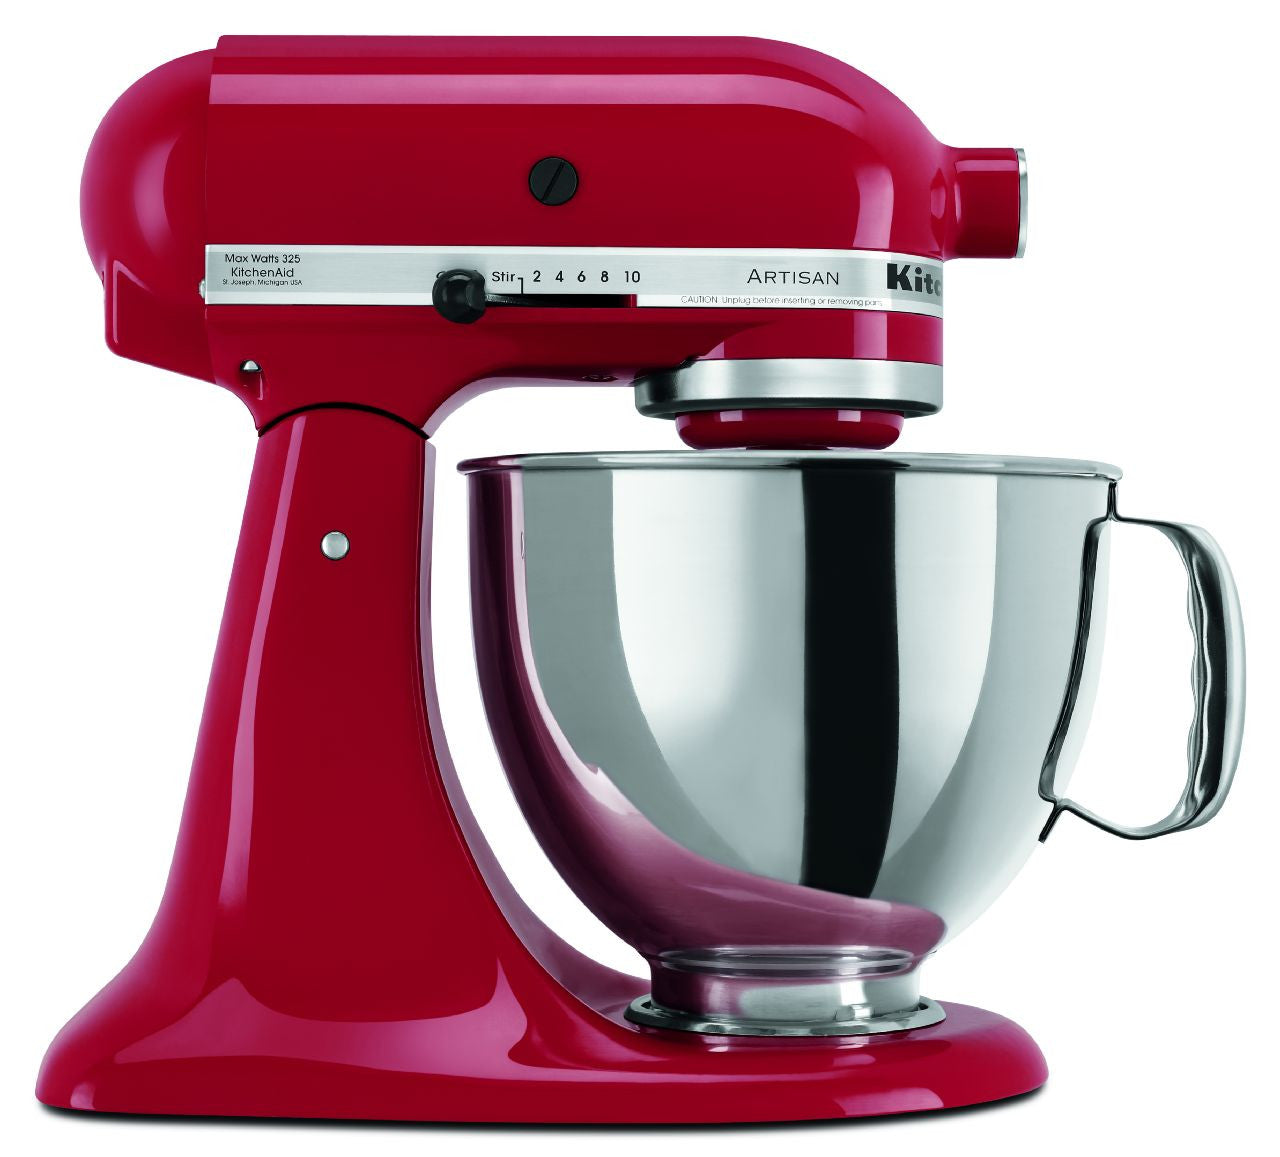 Kitchenaid 5 Qt. Artisan Series with Pouring Shield - Empire Red KSM150PSER